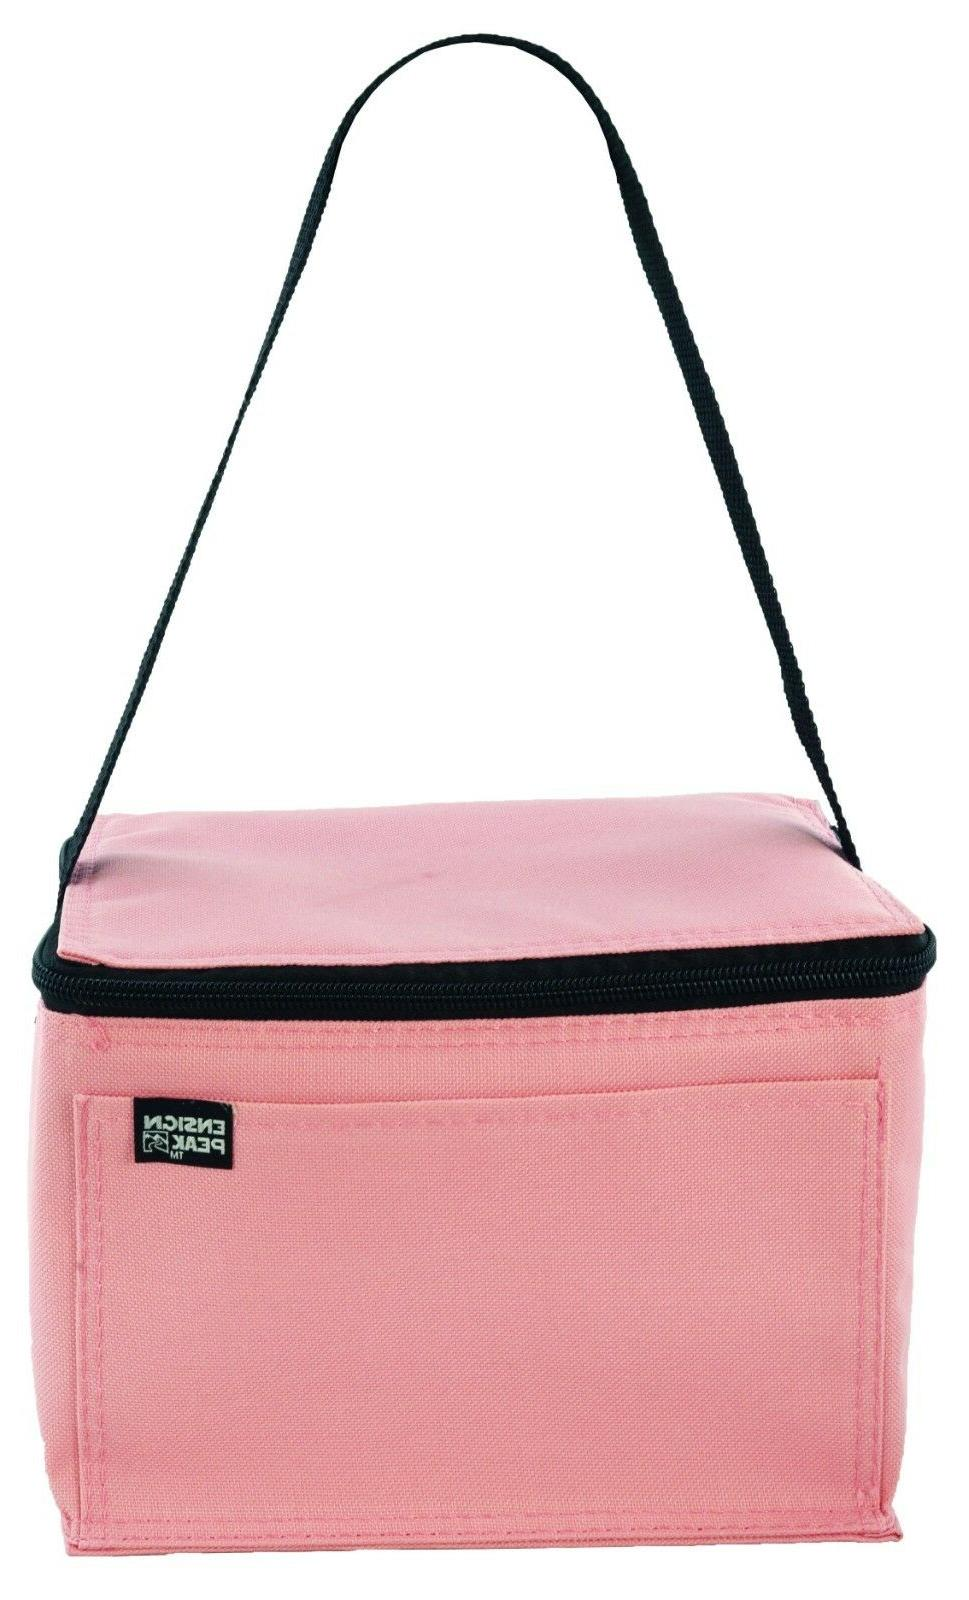 Ensign Peak Basic Insulated Cooler Proof